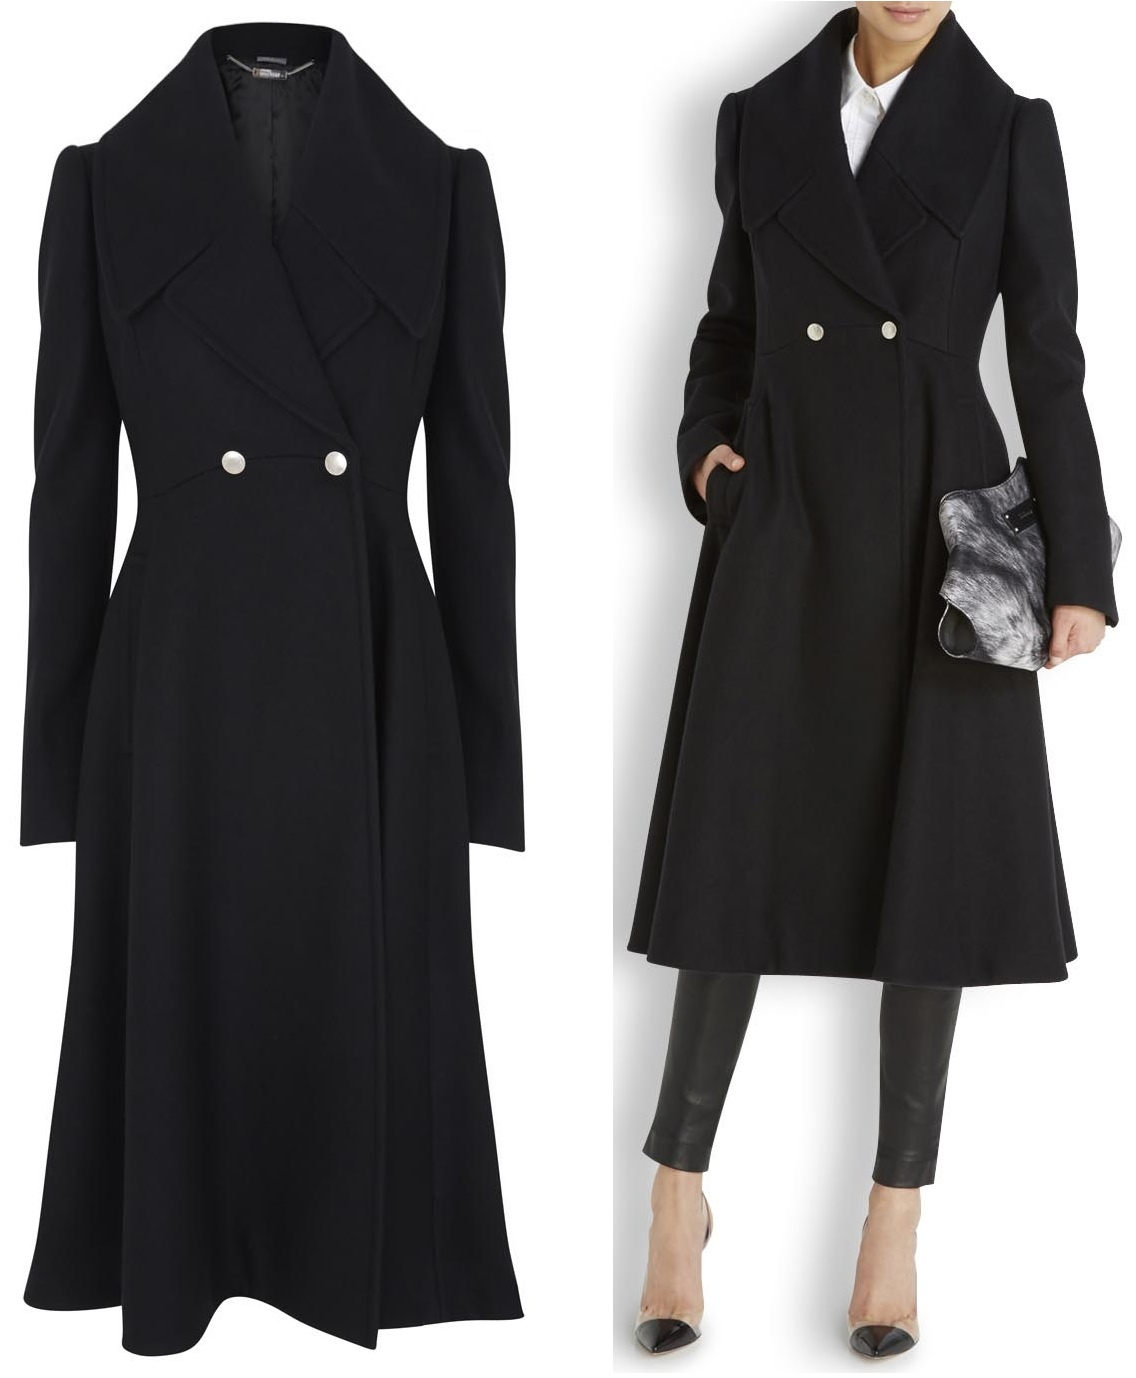 Shop for and buy fit and flare coat online at Macy's. Find fit and flare coat at Macy's.